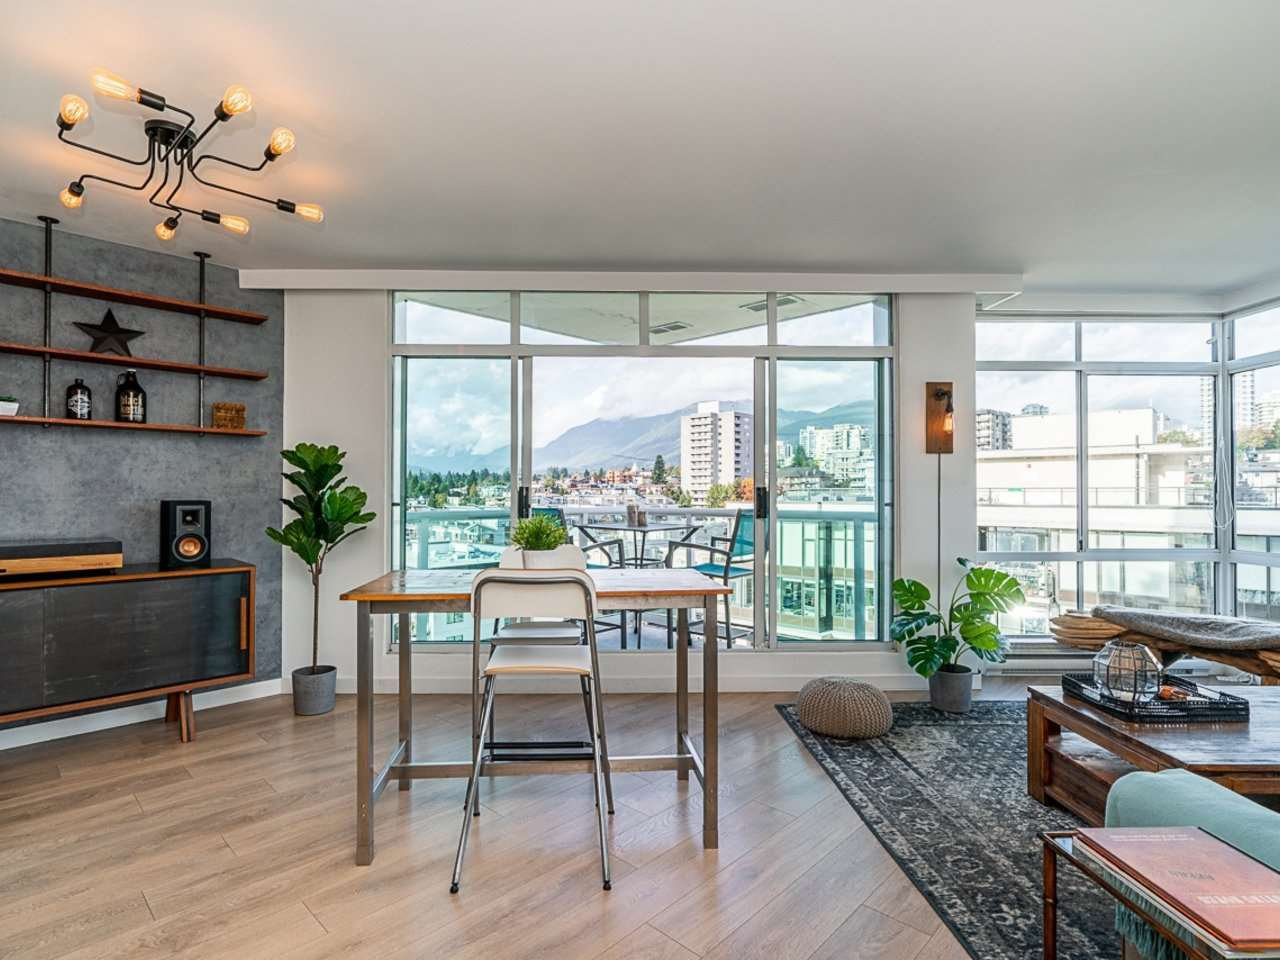 """Main Photo: 1203 130 E 2ND Street in North Vancouver: Lower Lonsdale Condo for sale in """"The Olympic"""" : MLS®# R2511161"""